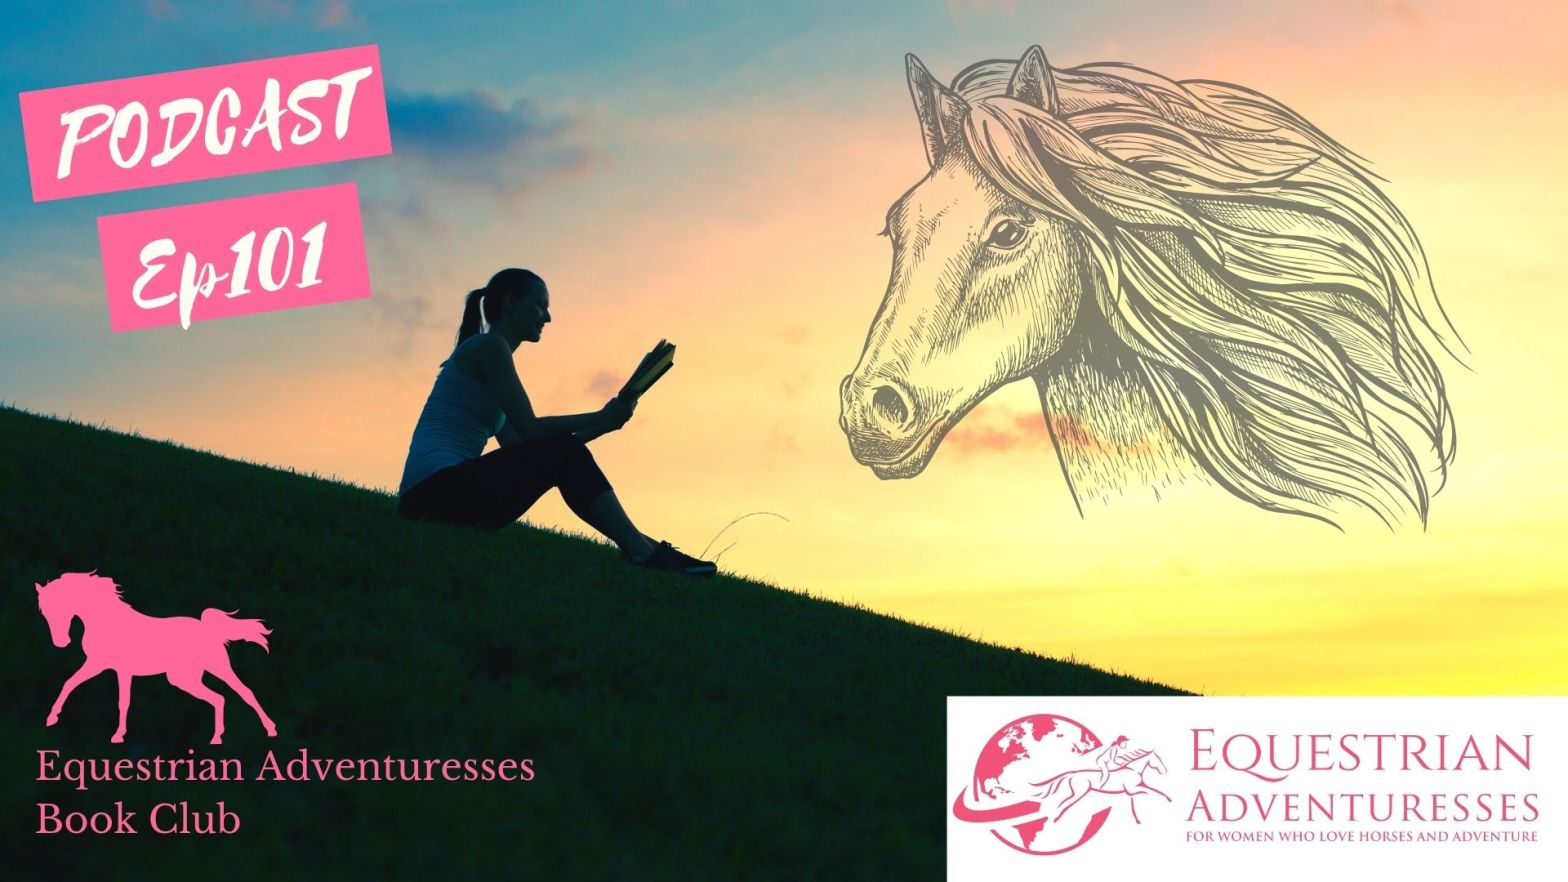 Equestrian Adventuresses Travel and Horse Podcast Ep 101 - Equestrian Adventuress Book Club